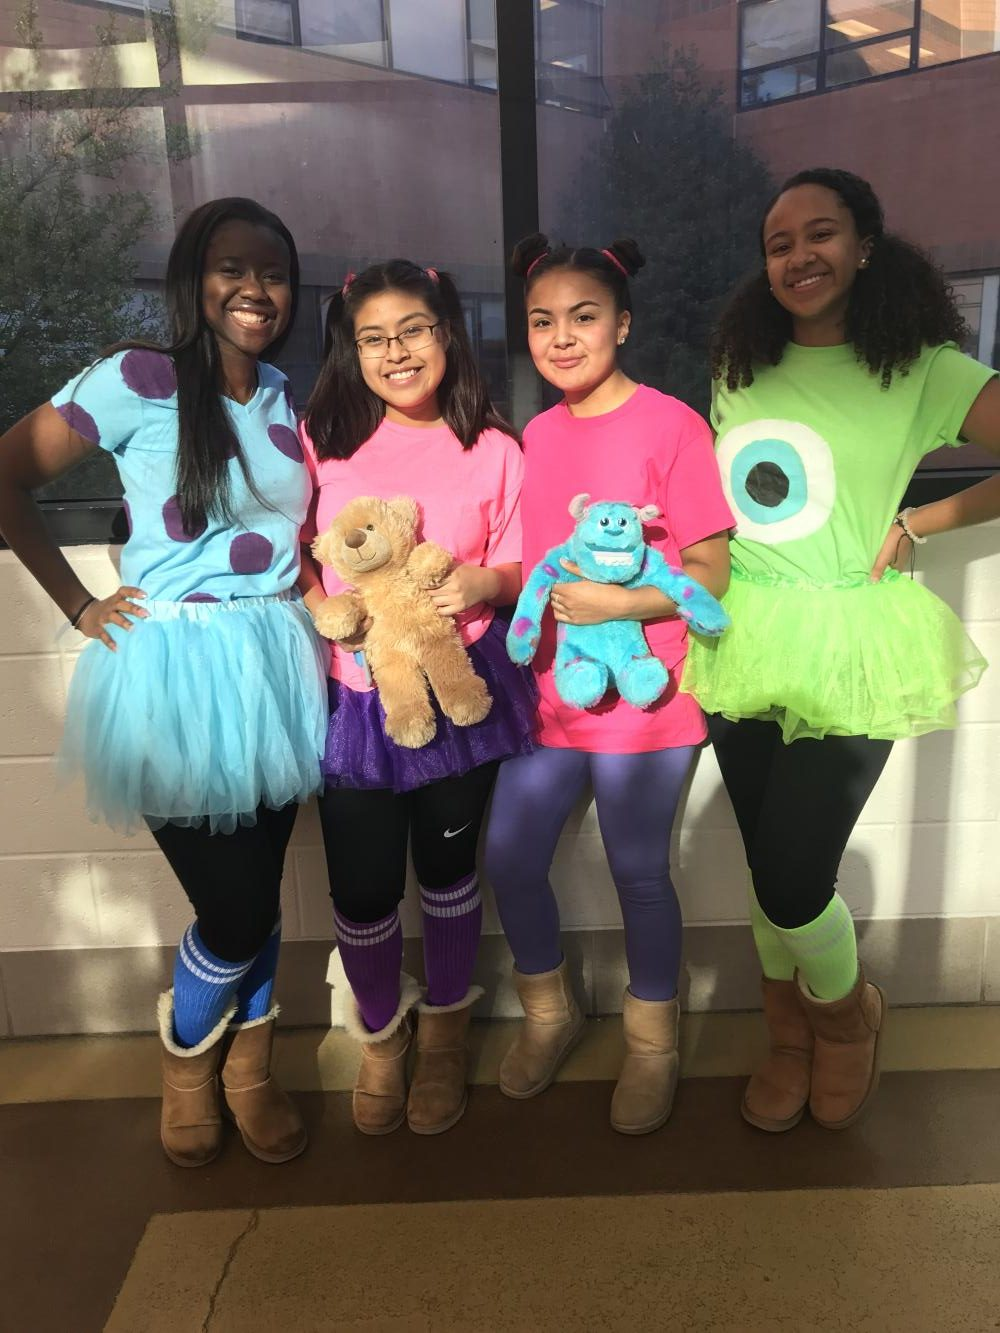 Sully (Eudel Ndong), Boo #1 (Dariana Girao Contreras), Boo #2 (Vikki Batres Jandres), Mike (Christina Cordero) dress as the cast of Monsters, Inc for tv and movie character day